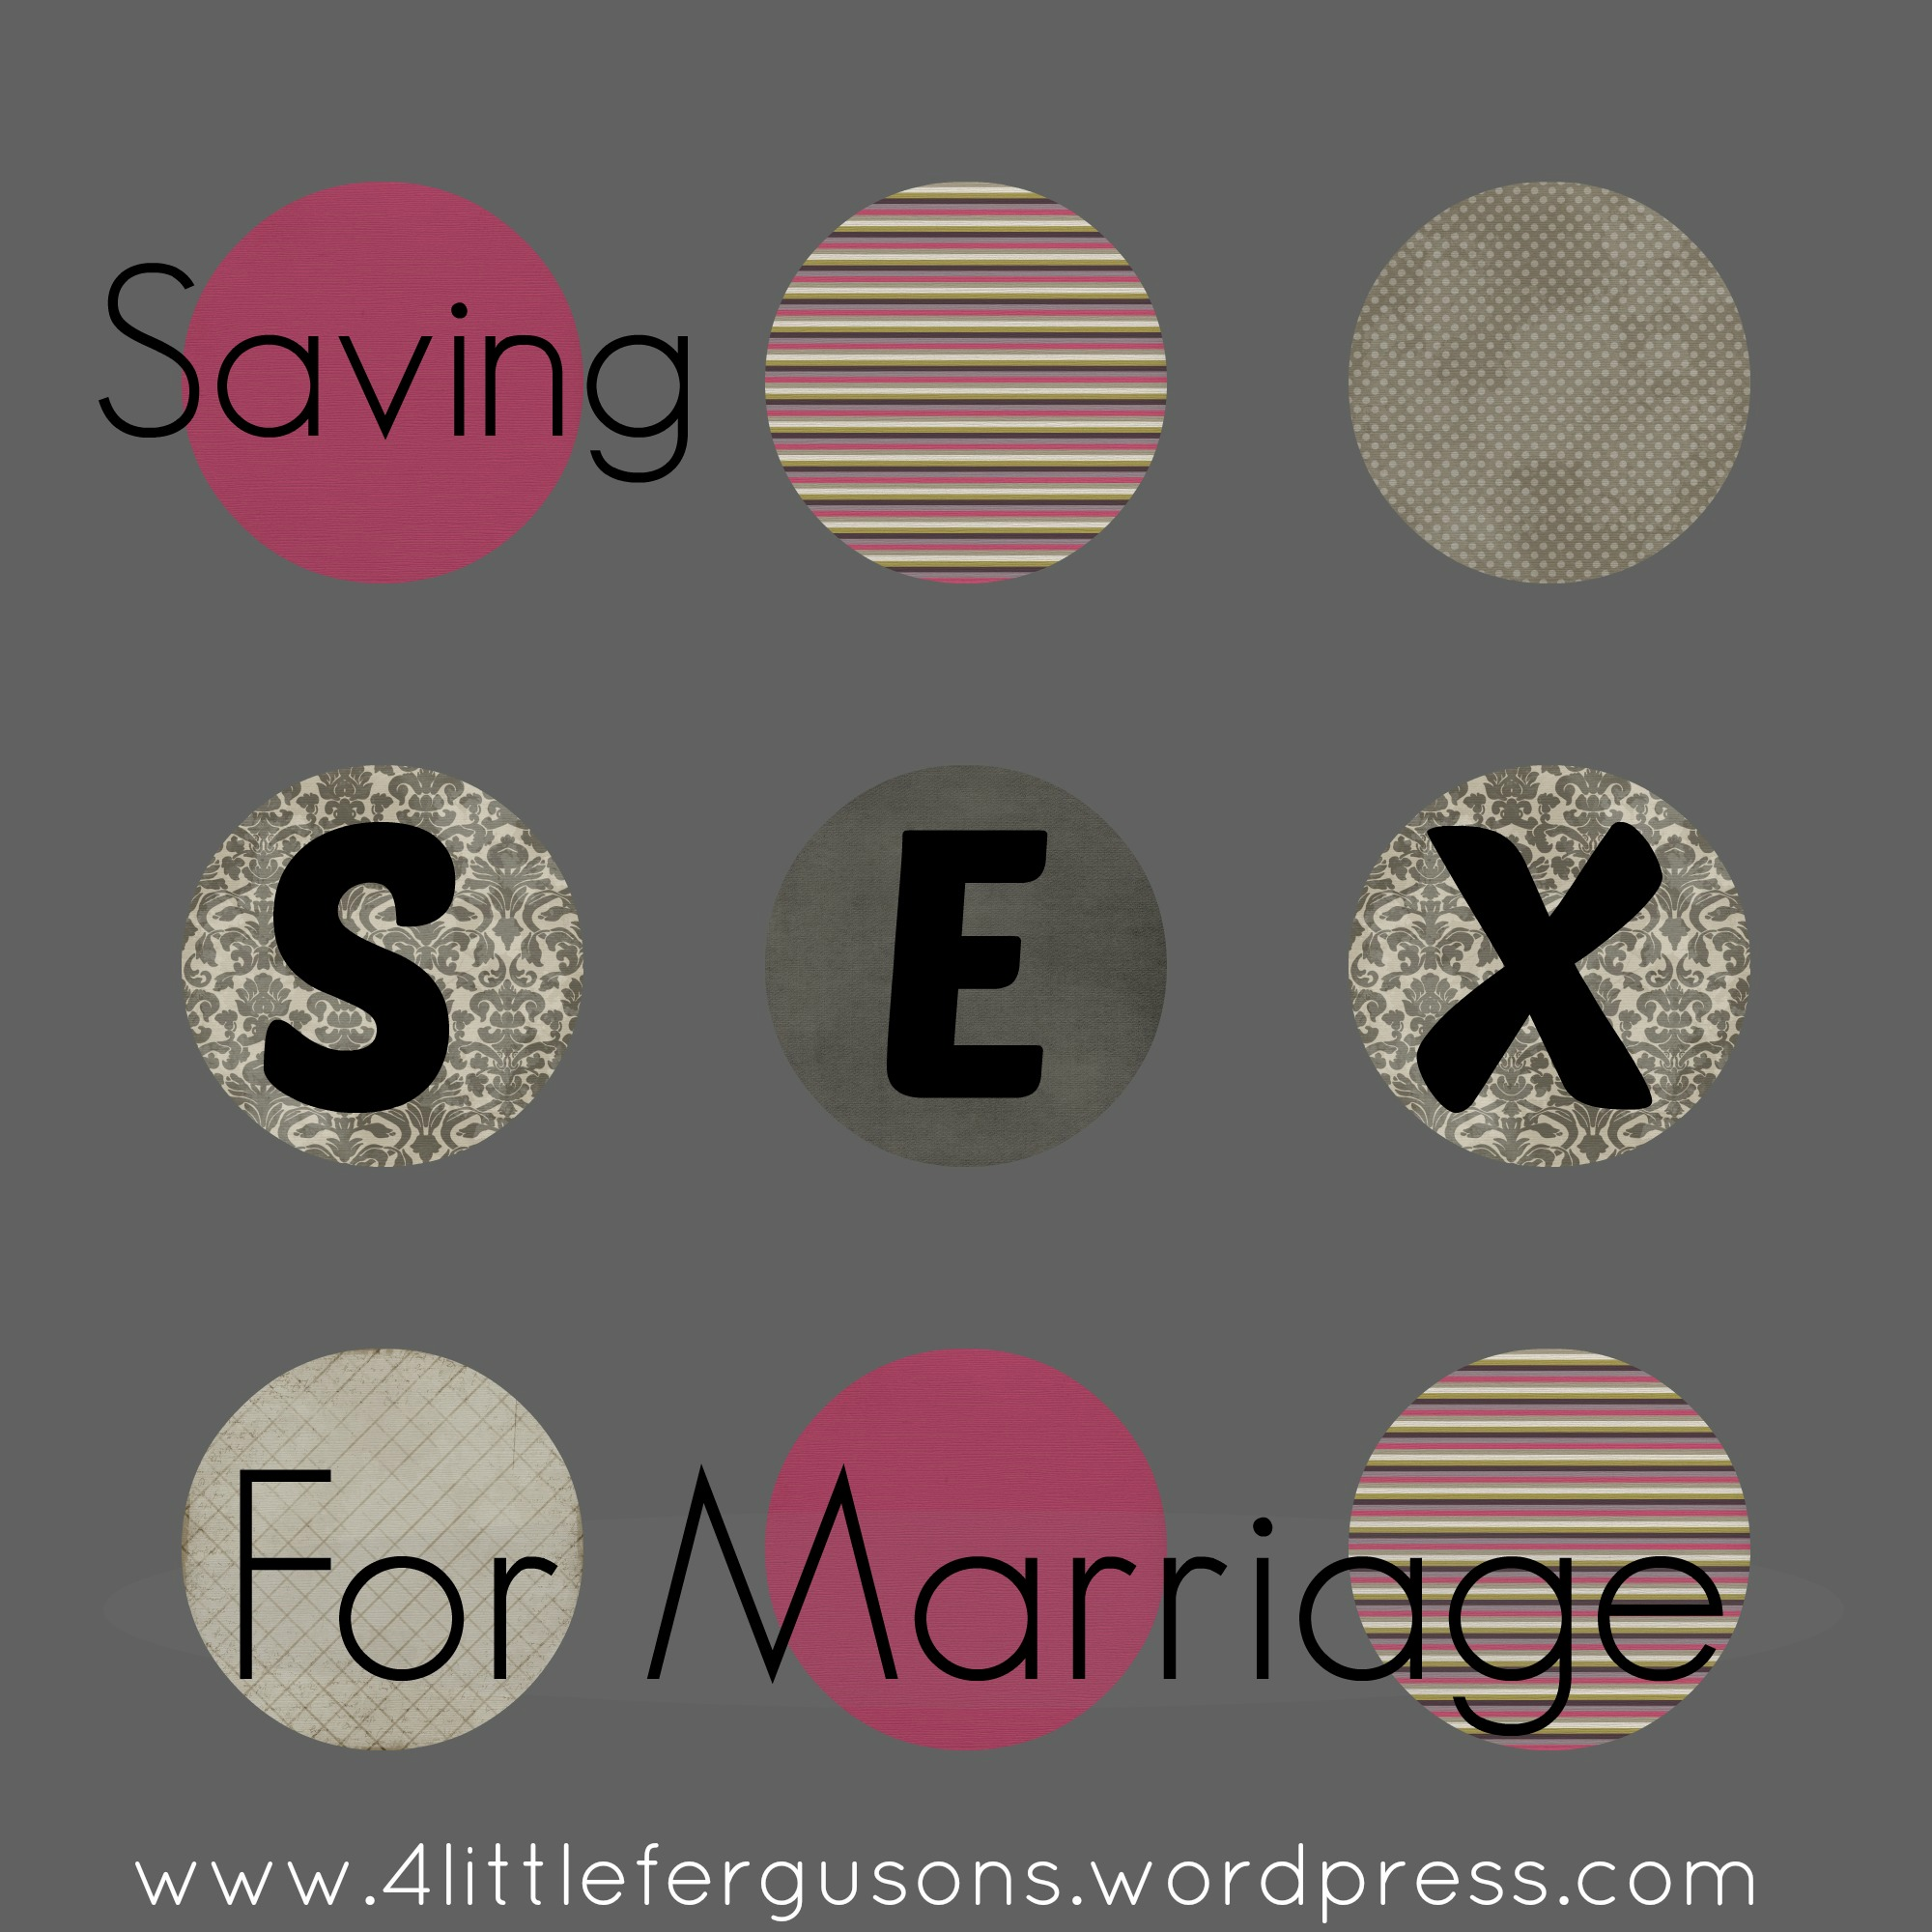 Reasons to save sex for marriage